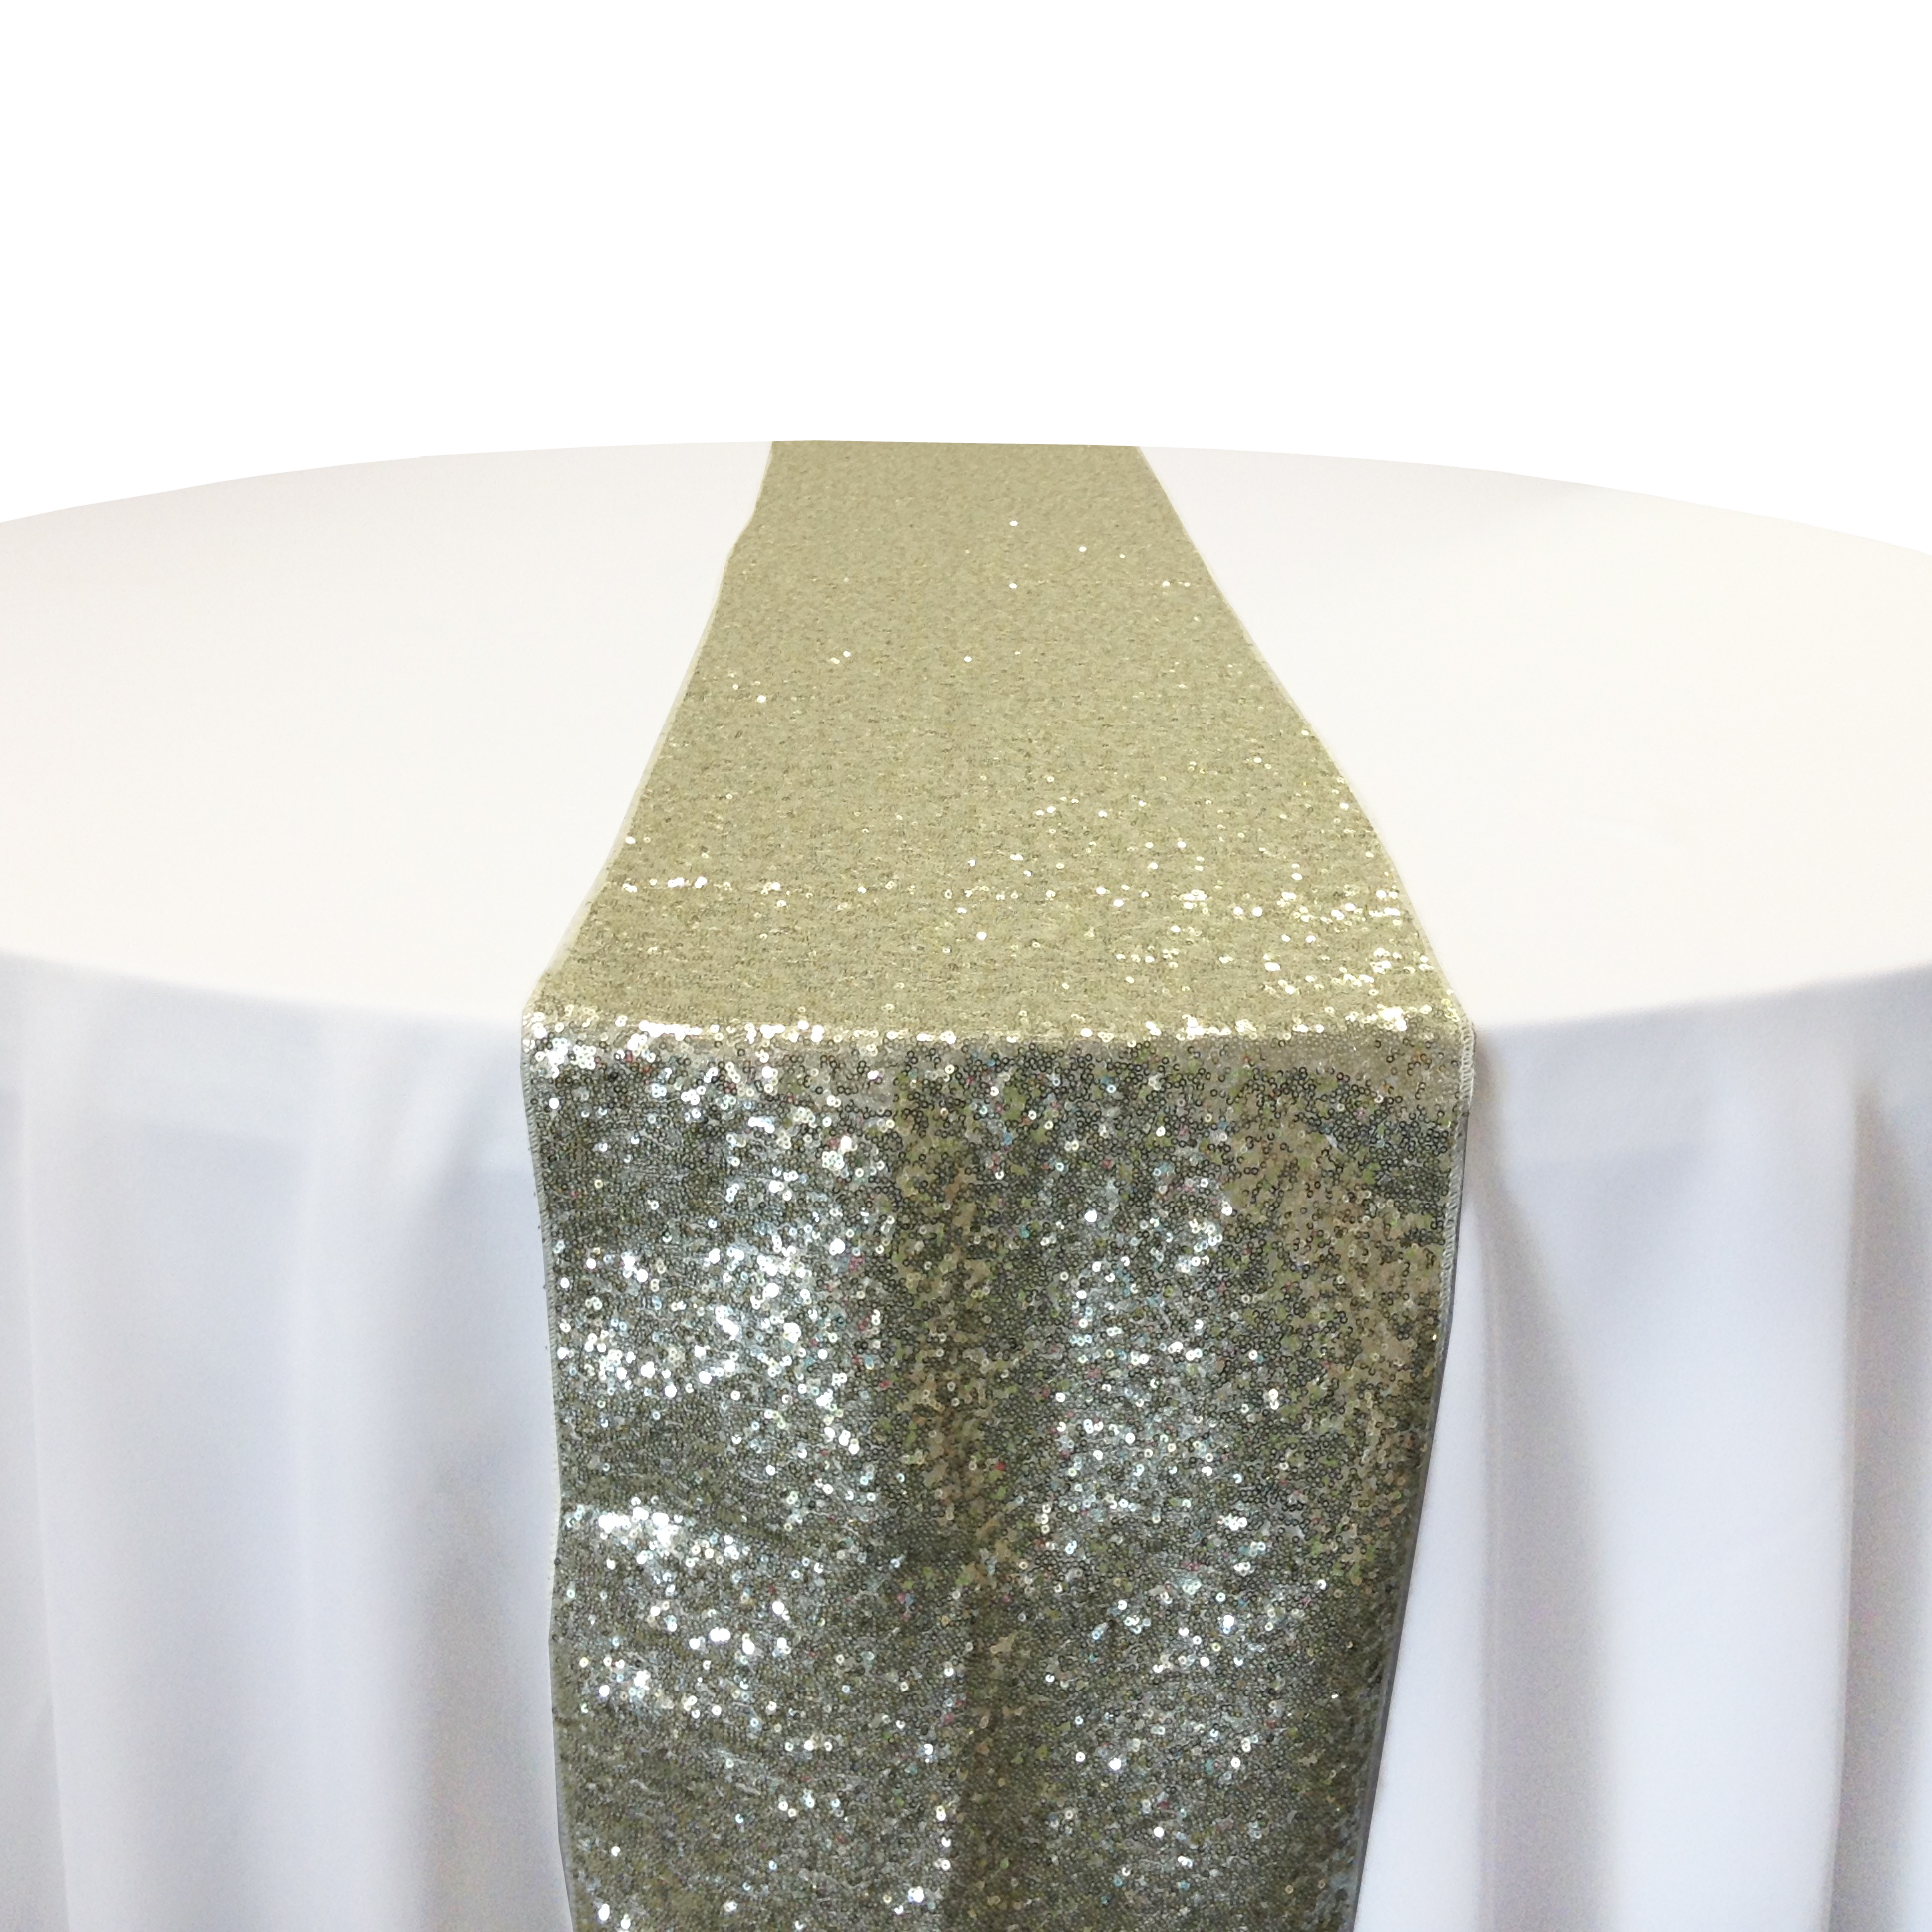 Ivory Taffeta Sequin Table Runner Rental Ivory Taffeta Glitz Table Runner Rental